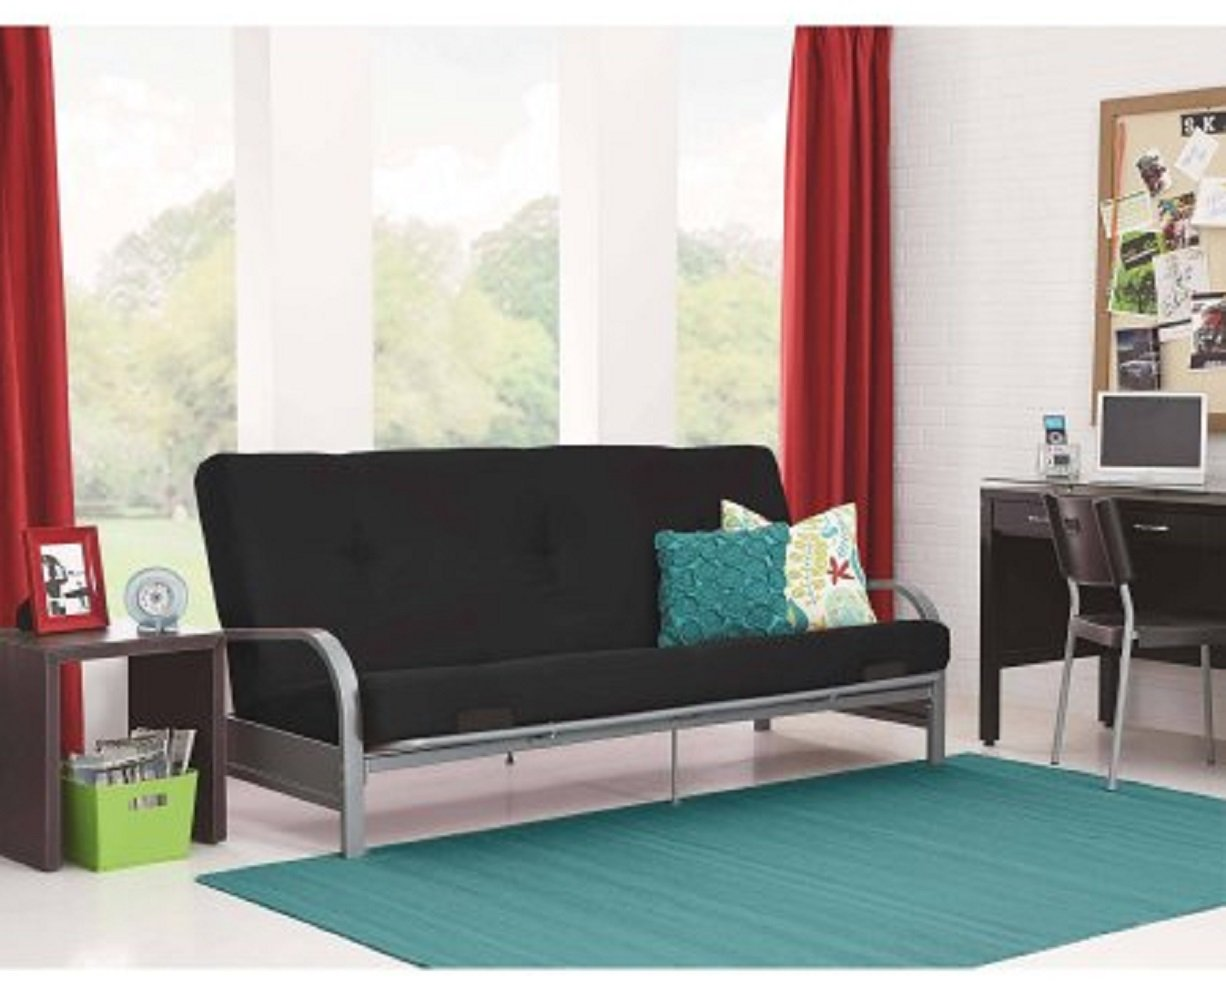 futon for living room. Amazon com  Modern Convertible Futon Sofa Bed Silver Metal Arm Frame with Full Size Mattress Kitchen Dining